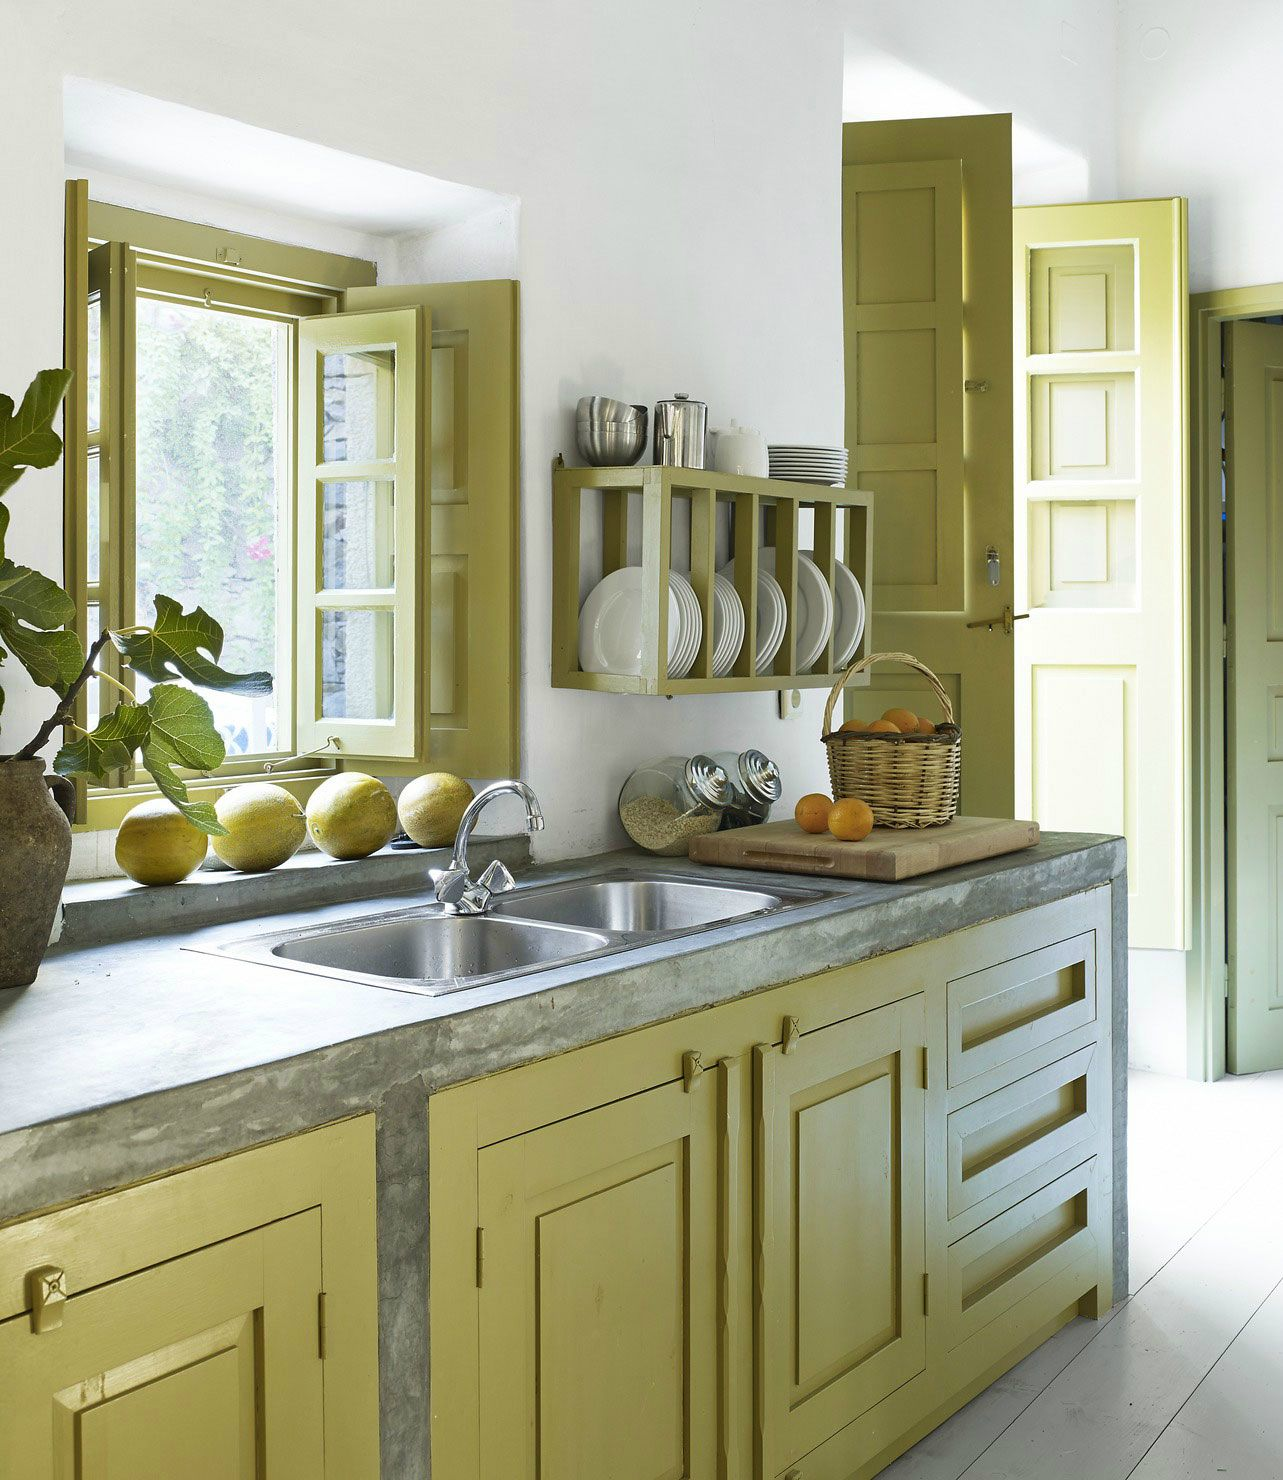 Elle decor predicts the color trends for 2017 yellow for Kitchen room decoration